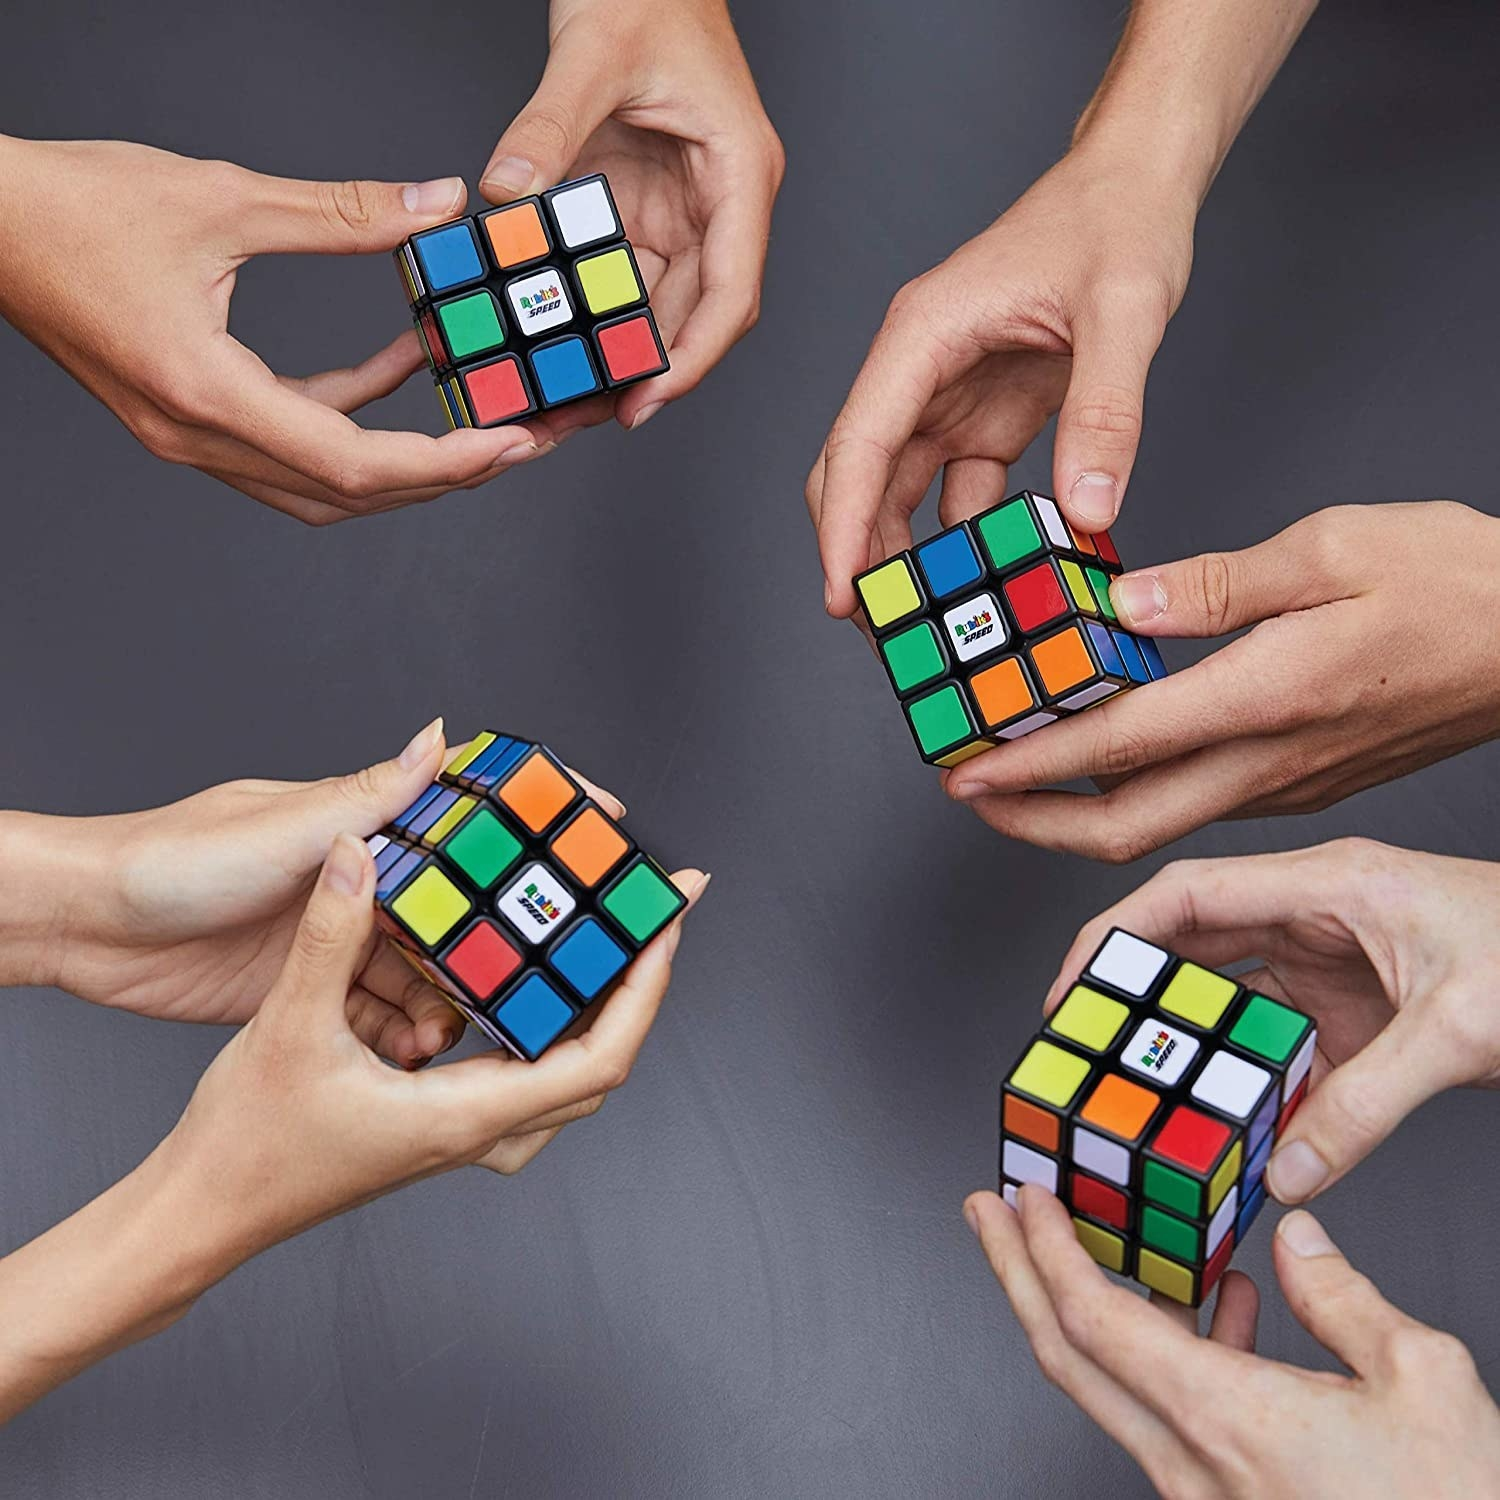 Four people playing with Rubik's cubes